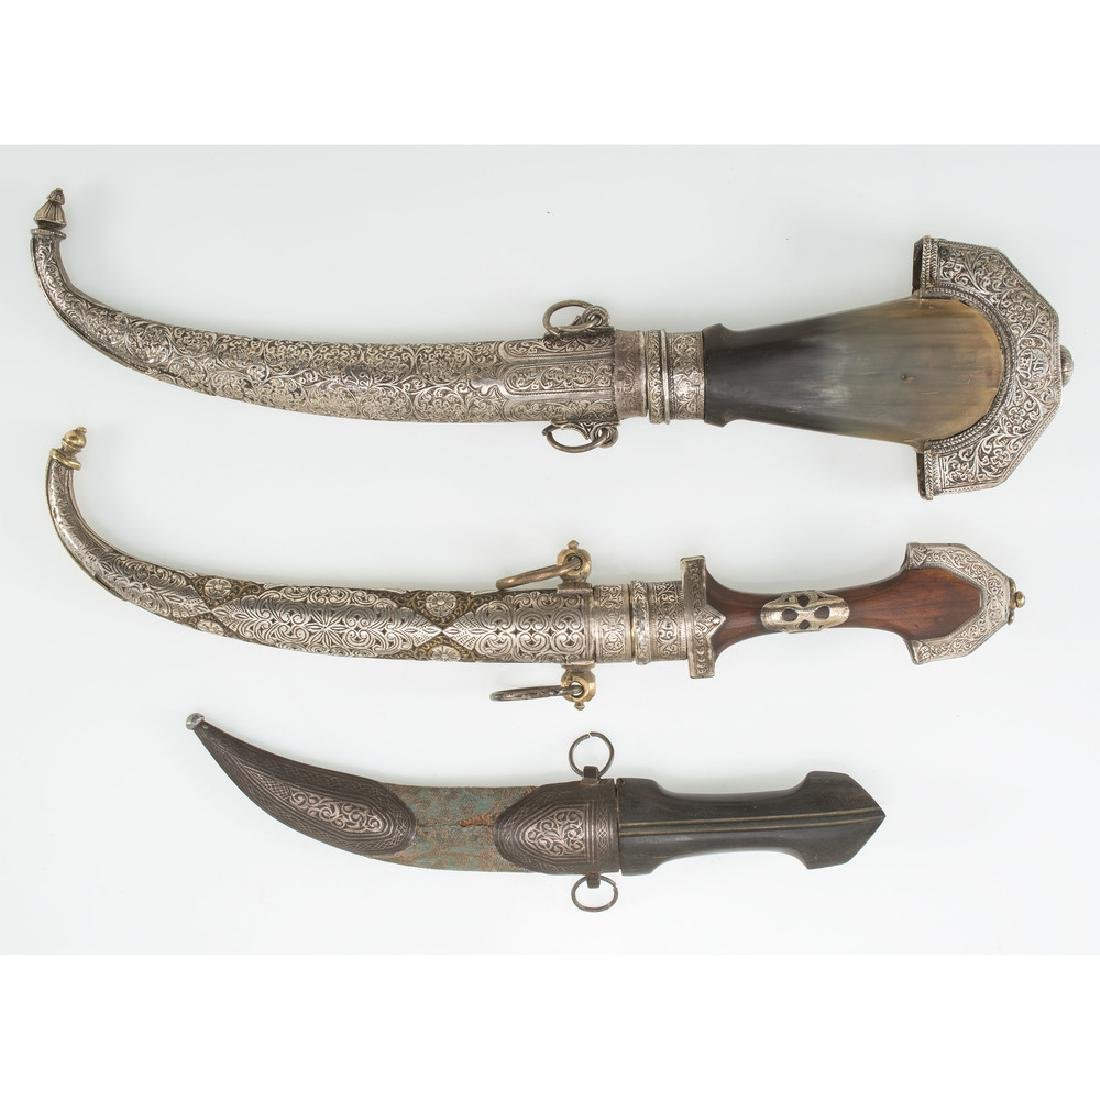 3 Curved Blade Moroccan Daggers - 4